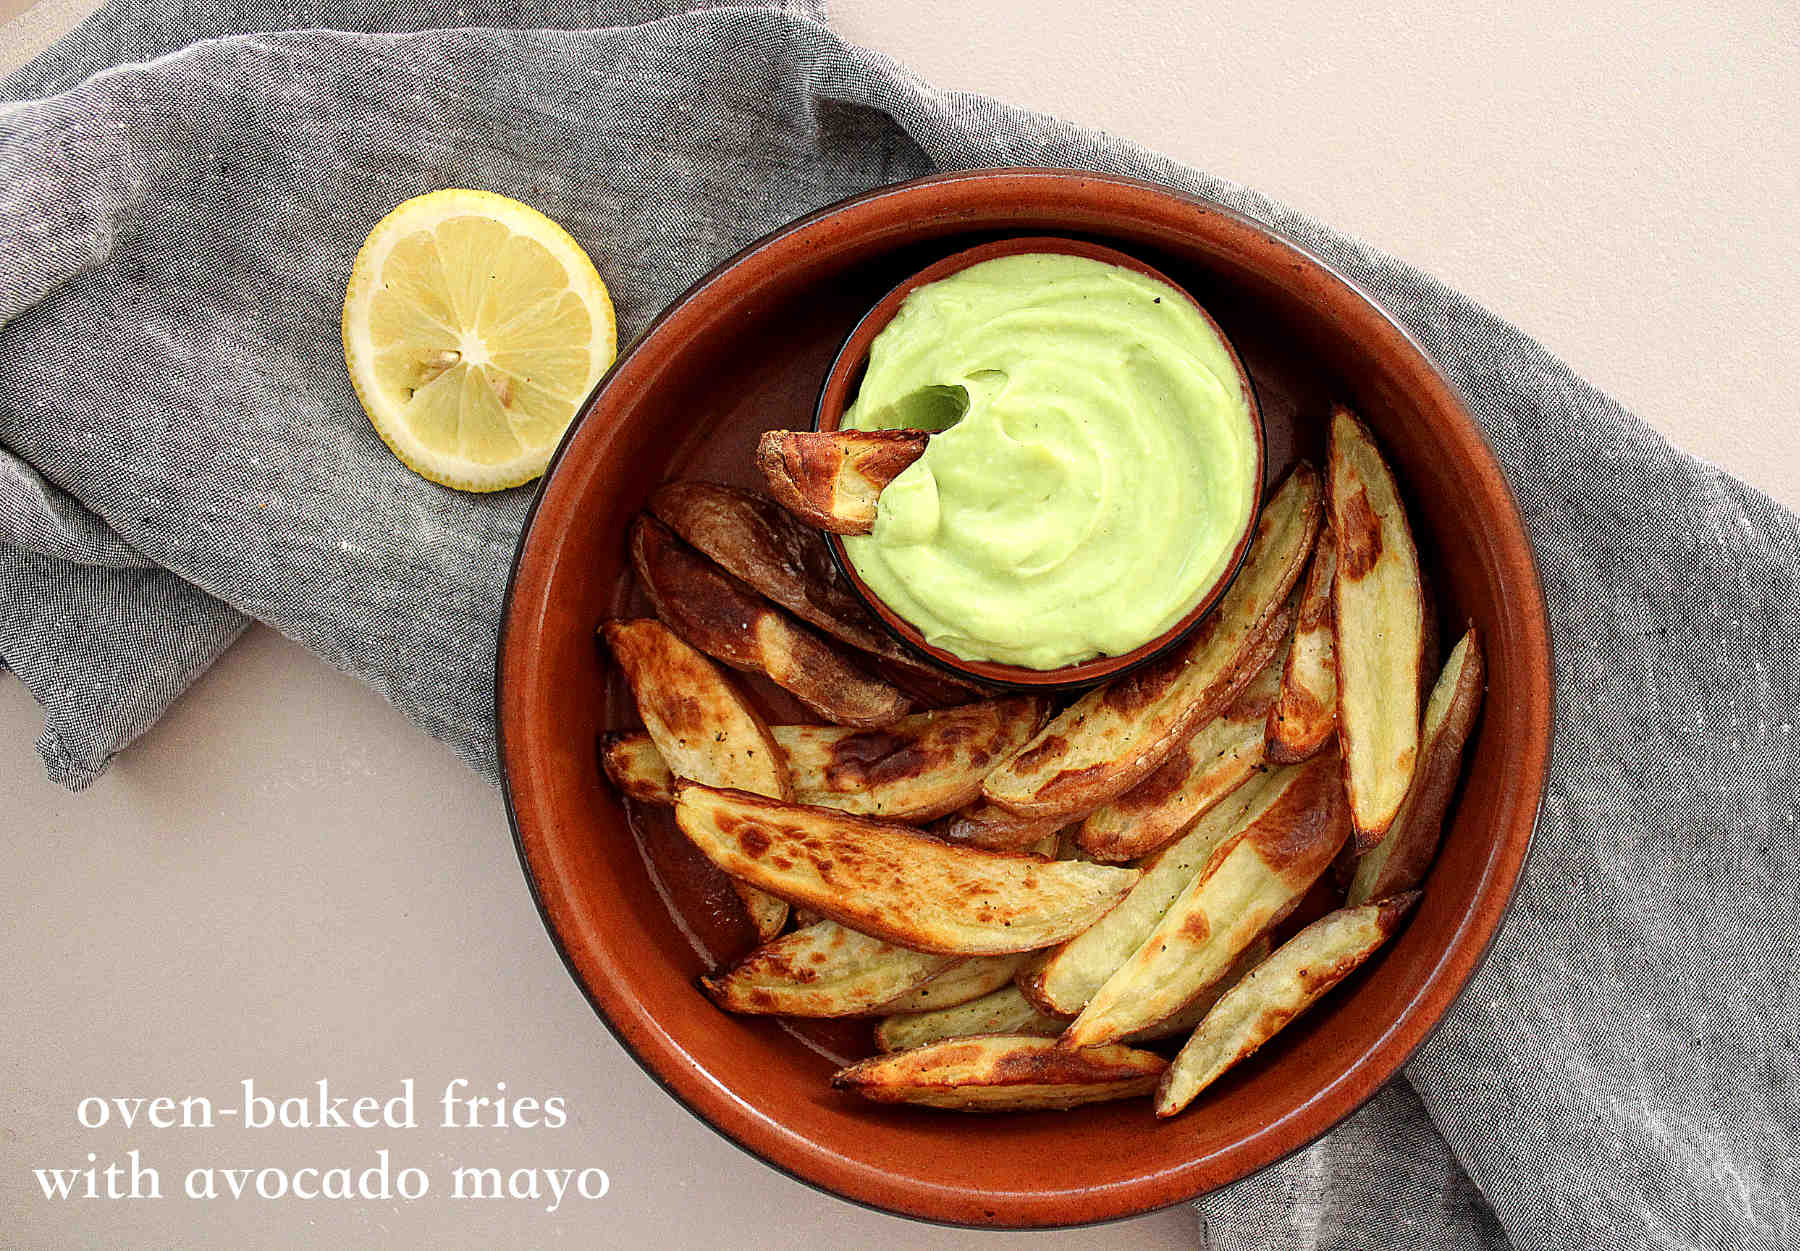 Oven baked fries and avocado mayo